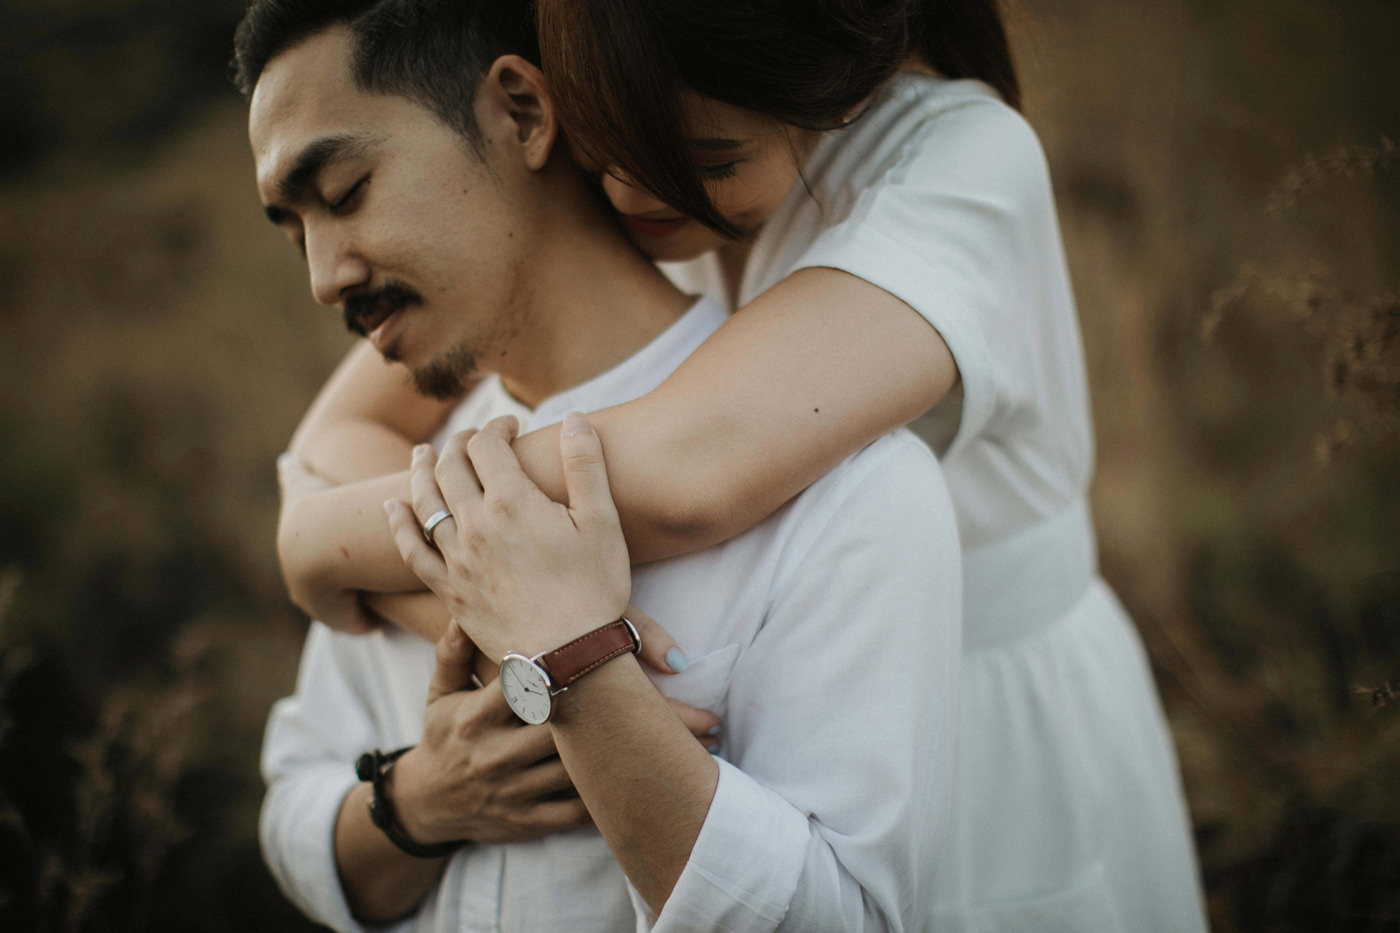 kintamani prewedding Stella Shawn connection session iluminen bali wedding photographer destination photography mountain batur tibumana waterfall melasti beach